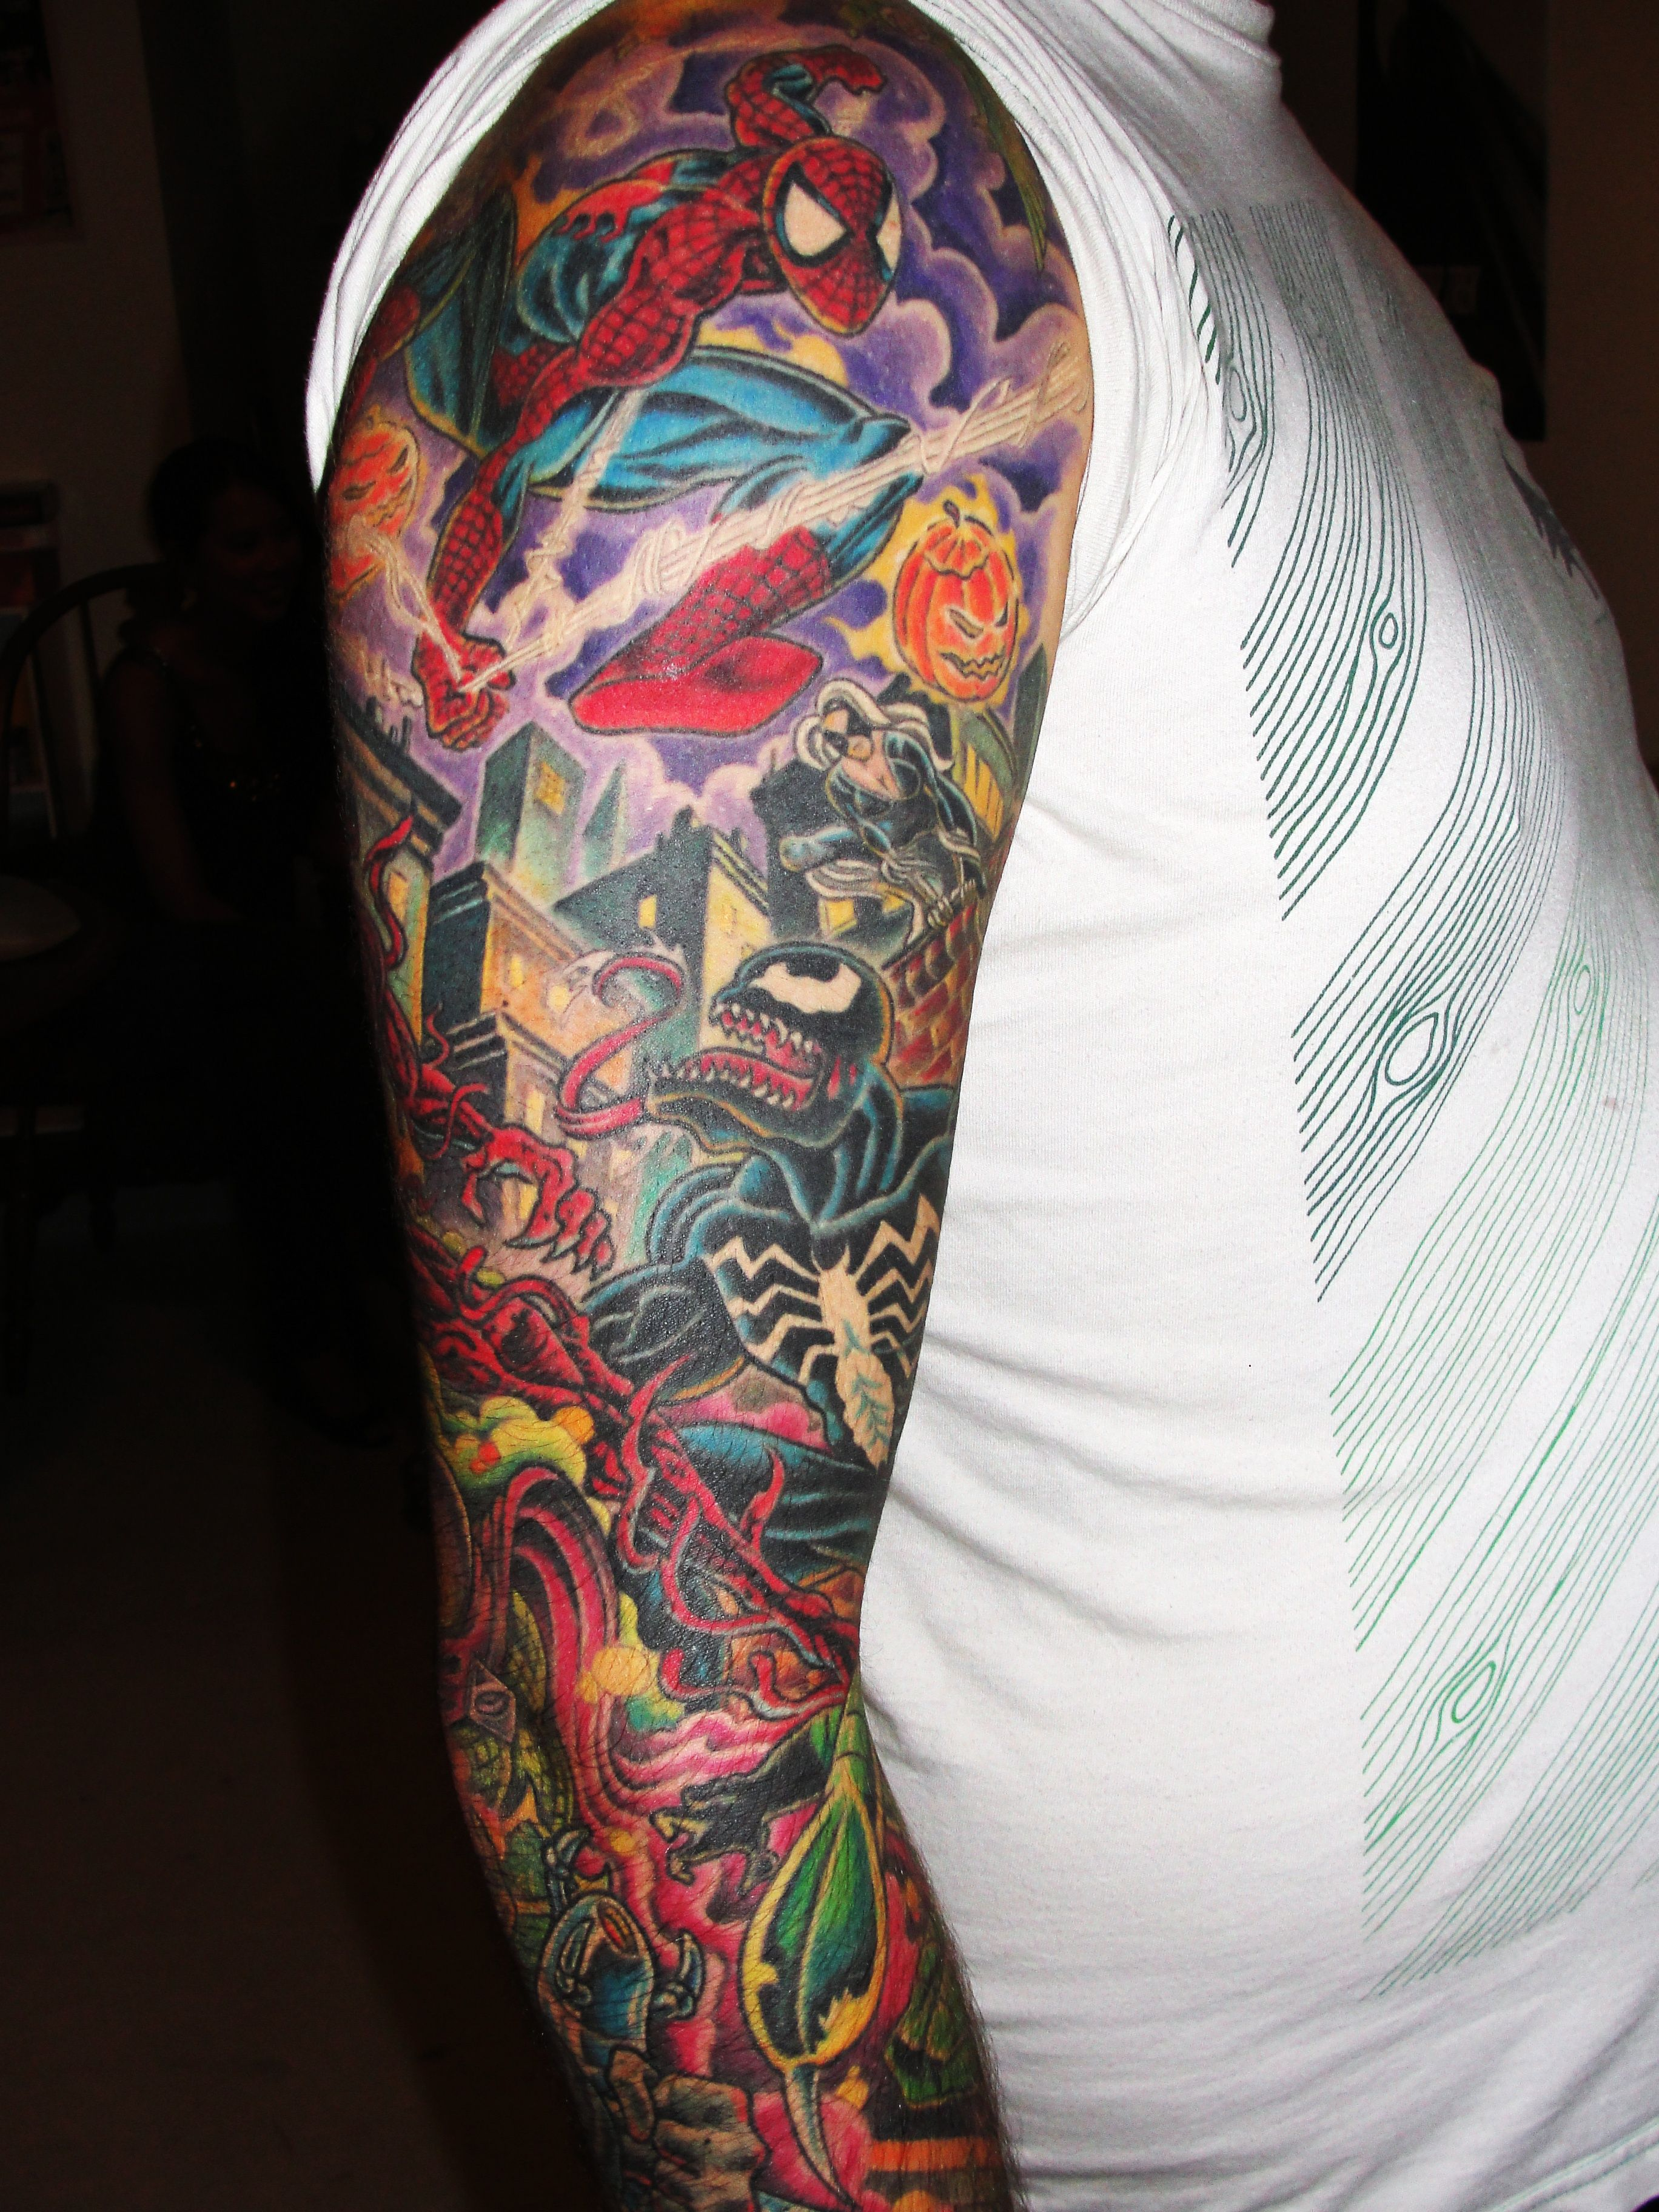 Spiderman And Super Villains Tattoo Daily Dose Of Tattoos Spiderman Tattoo Forearm Tattoo Men Marvel Tattoo Sleeve